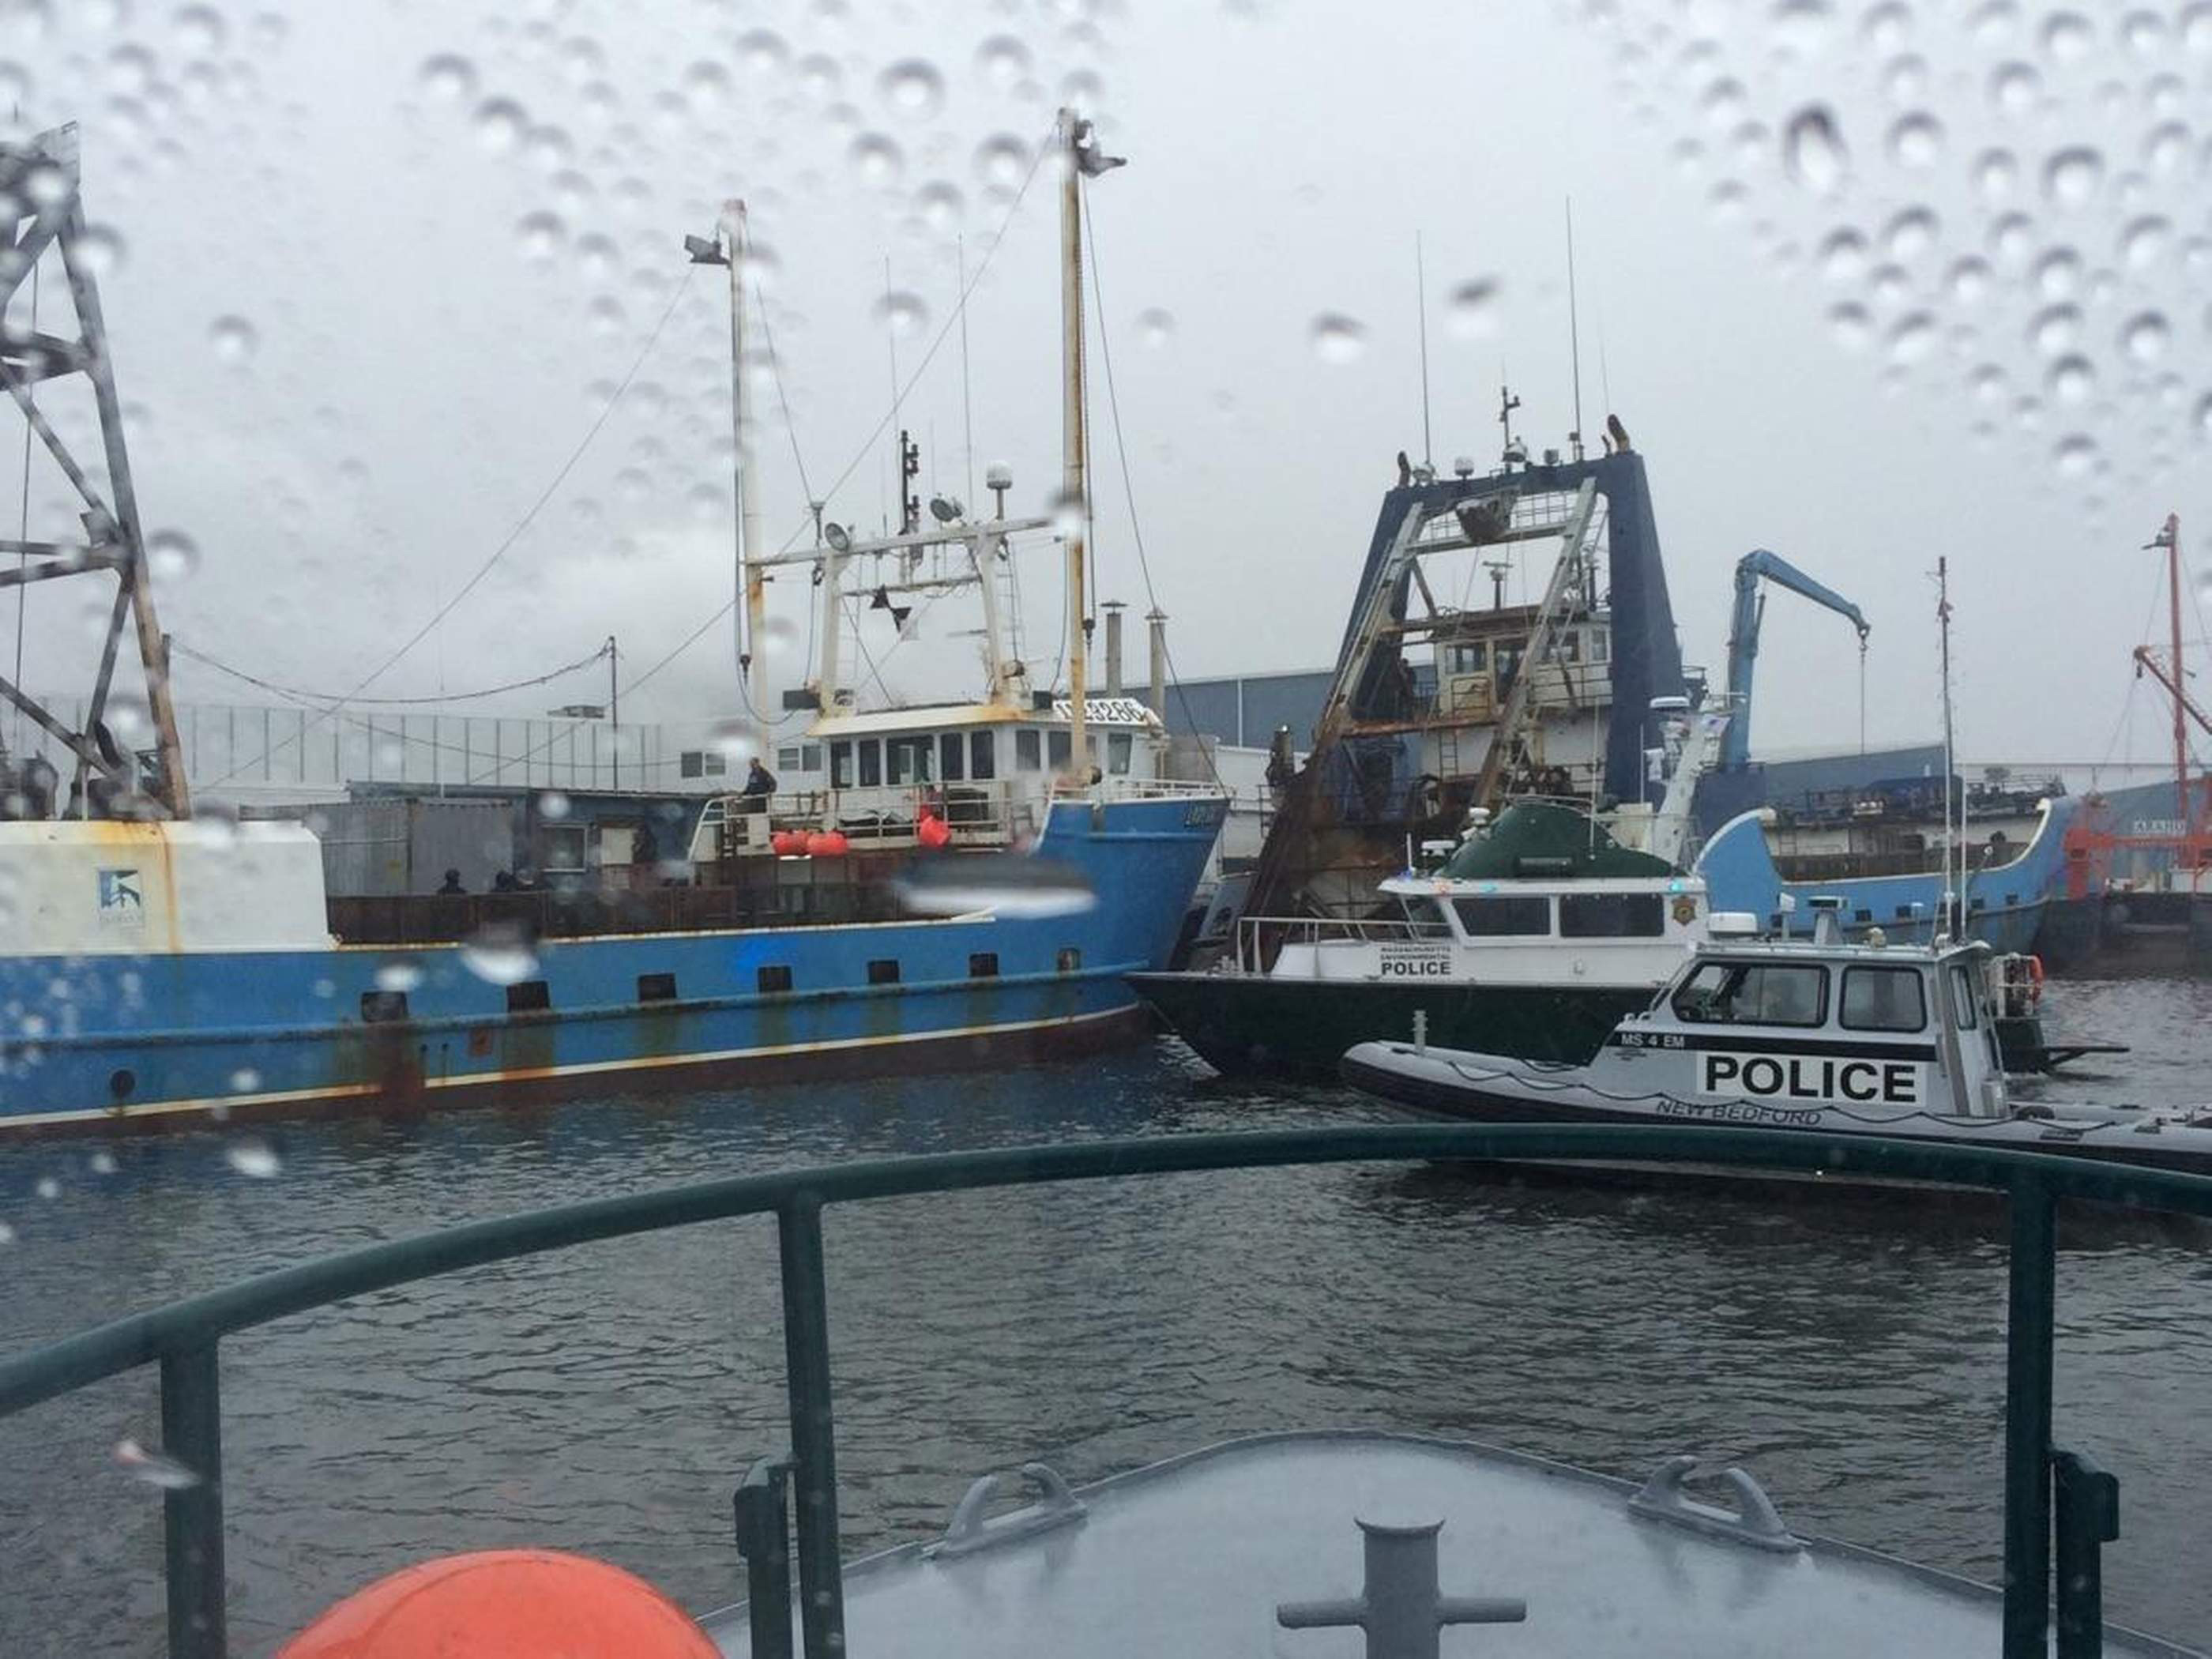 3rd New Bedford Seafood Executive Charged with Tax Evasion as Gov't Attorneys Target Waterfront